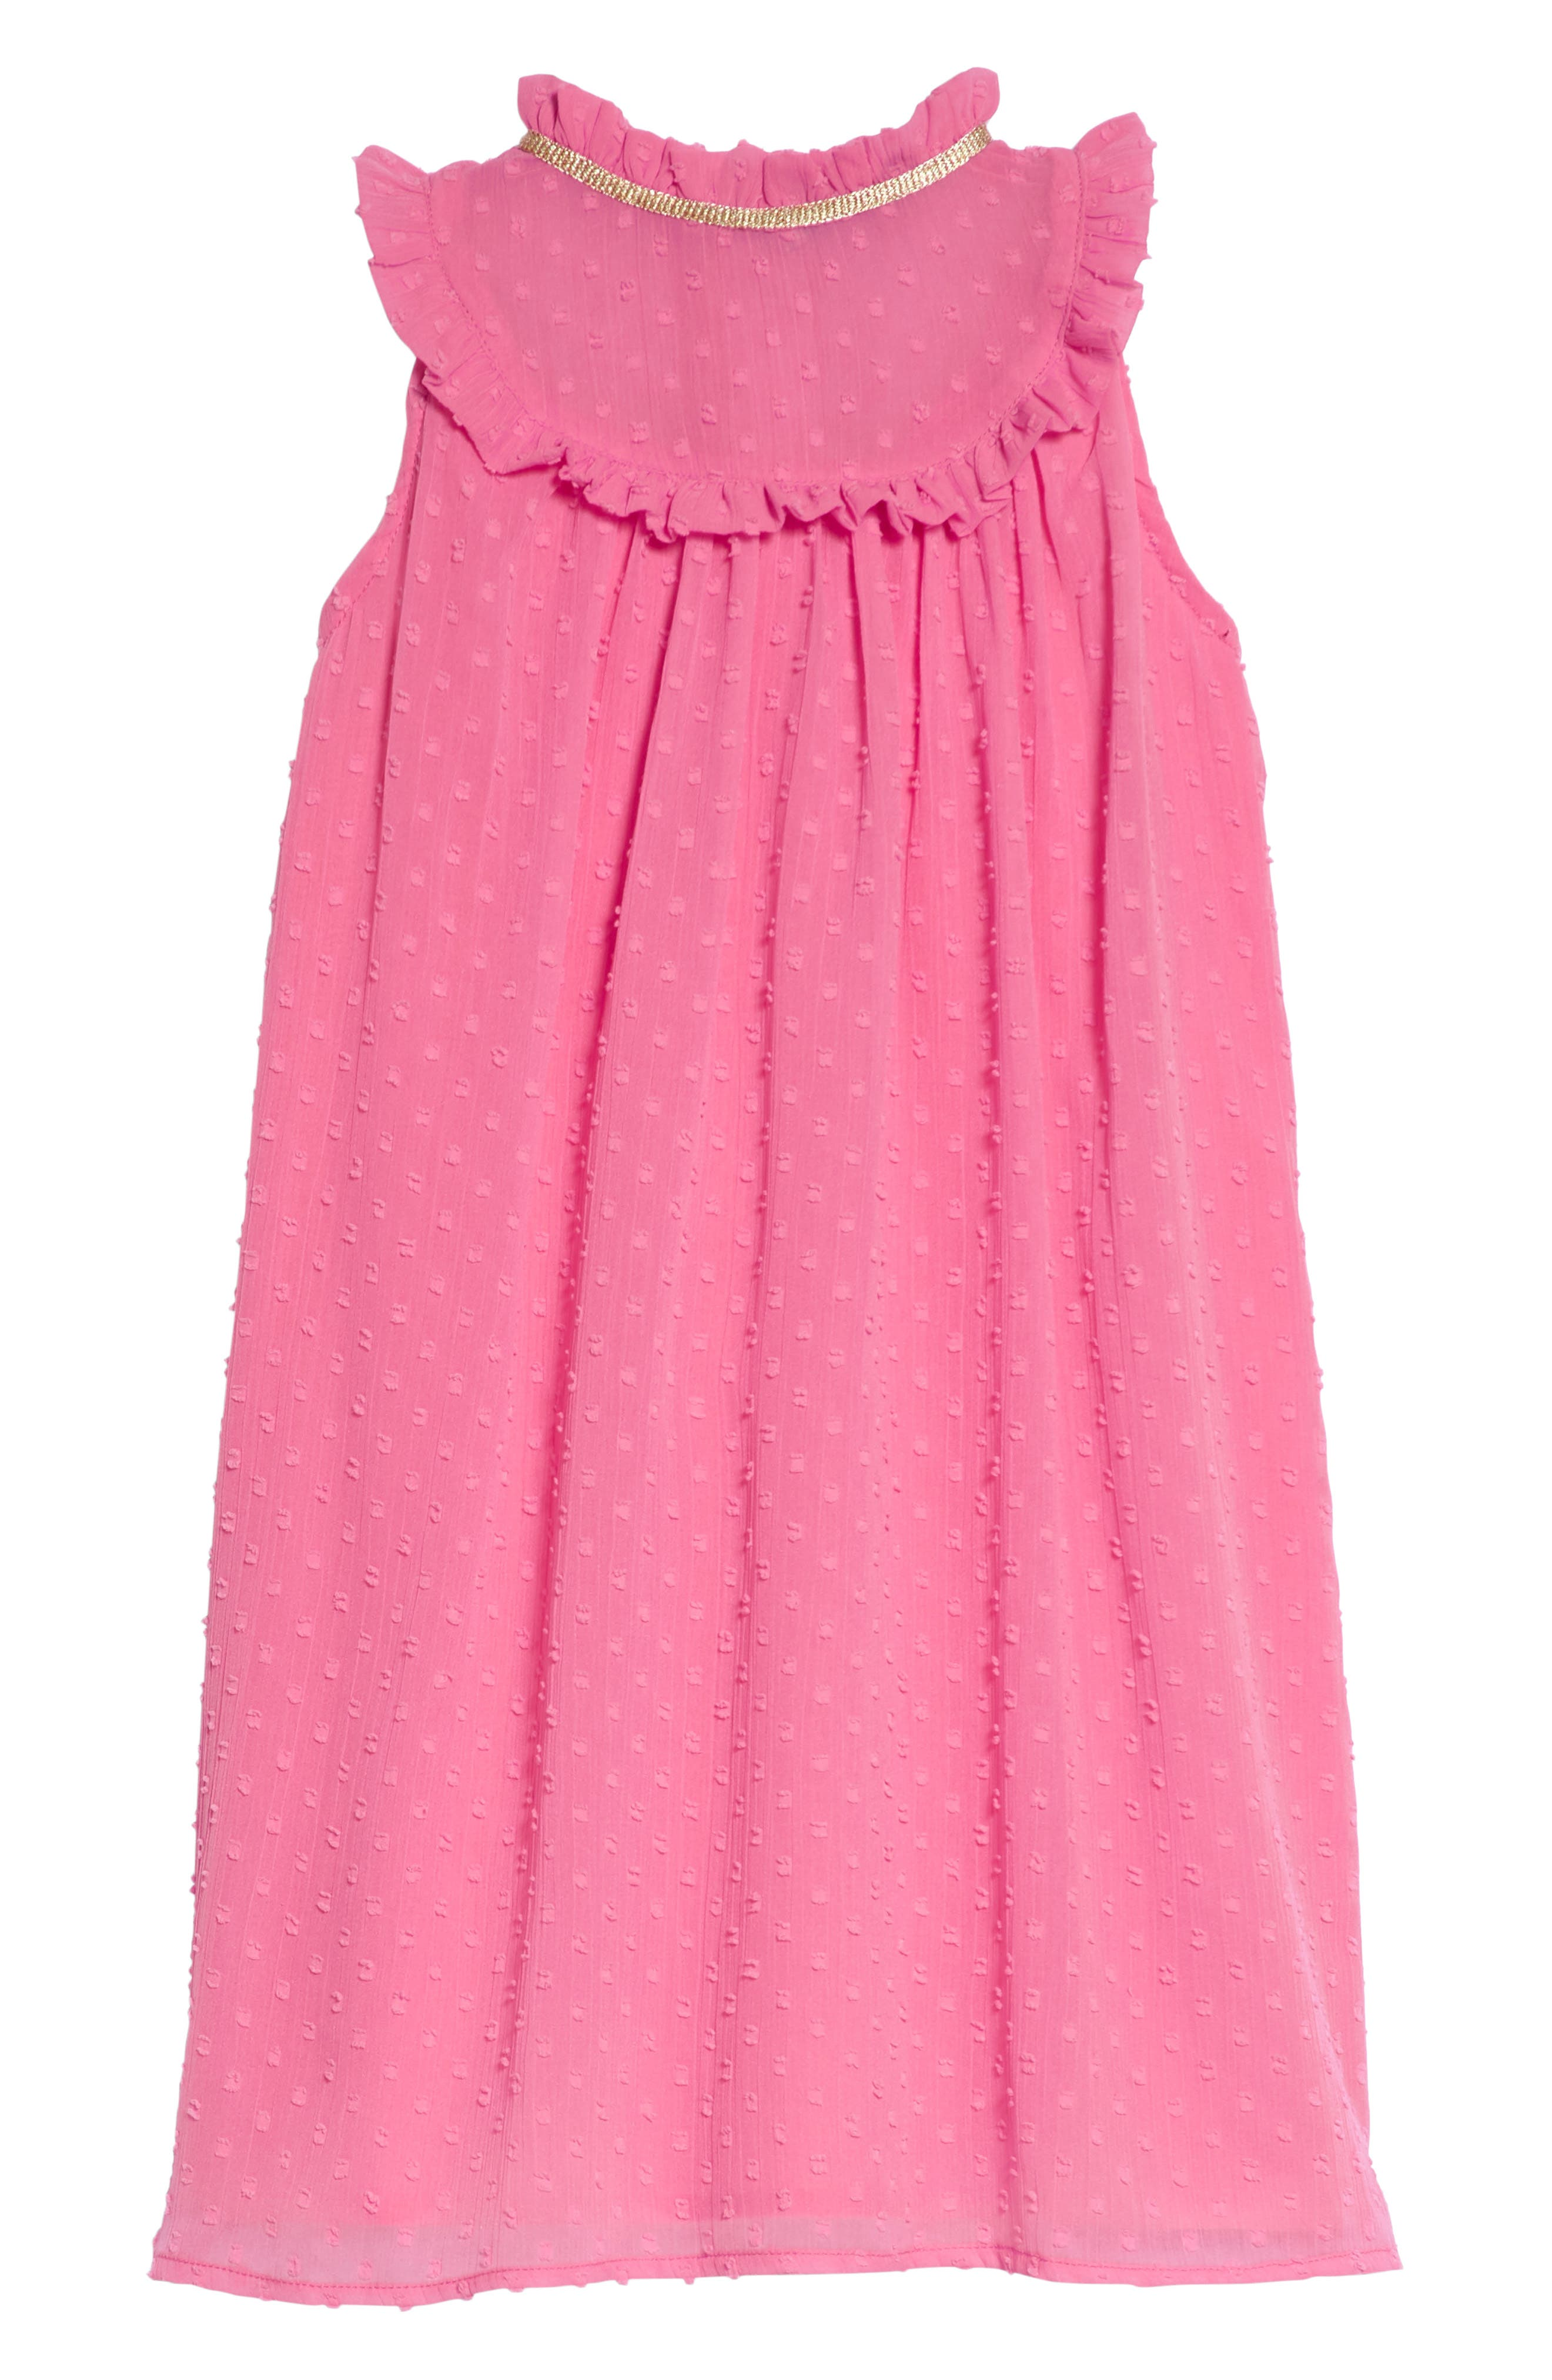 July Crush Dress,                         Main,                         color, Pink